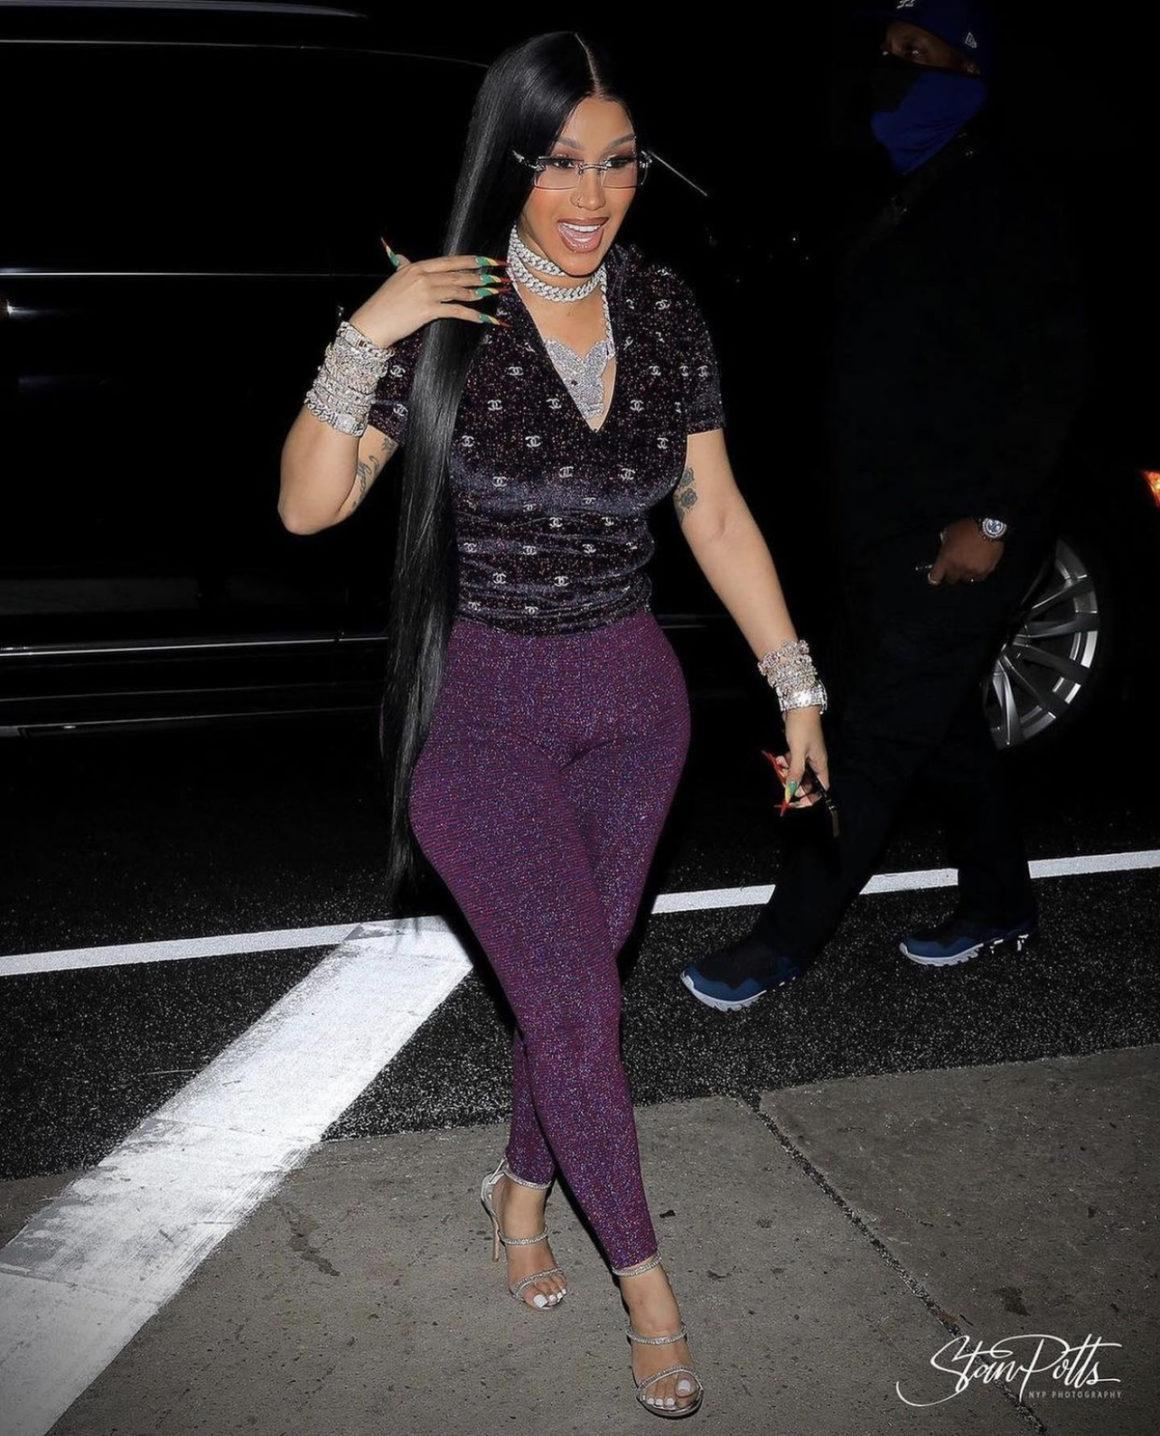 Cardi B Heads to Pre-Birthday Dinner at Giorgio Baldi With Offset Wearing Chanel Glitter Top and Leggings